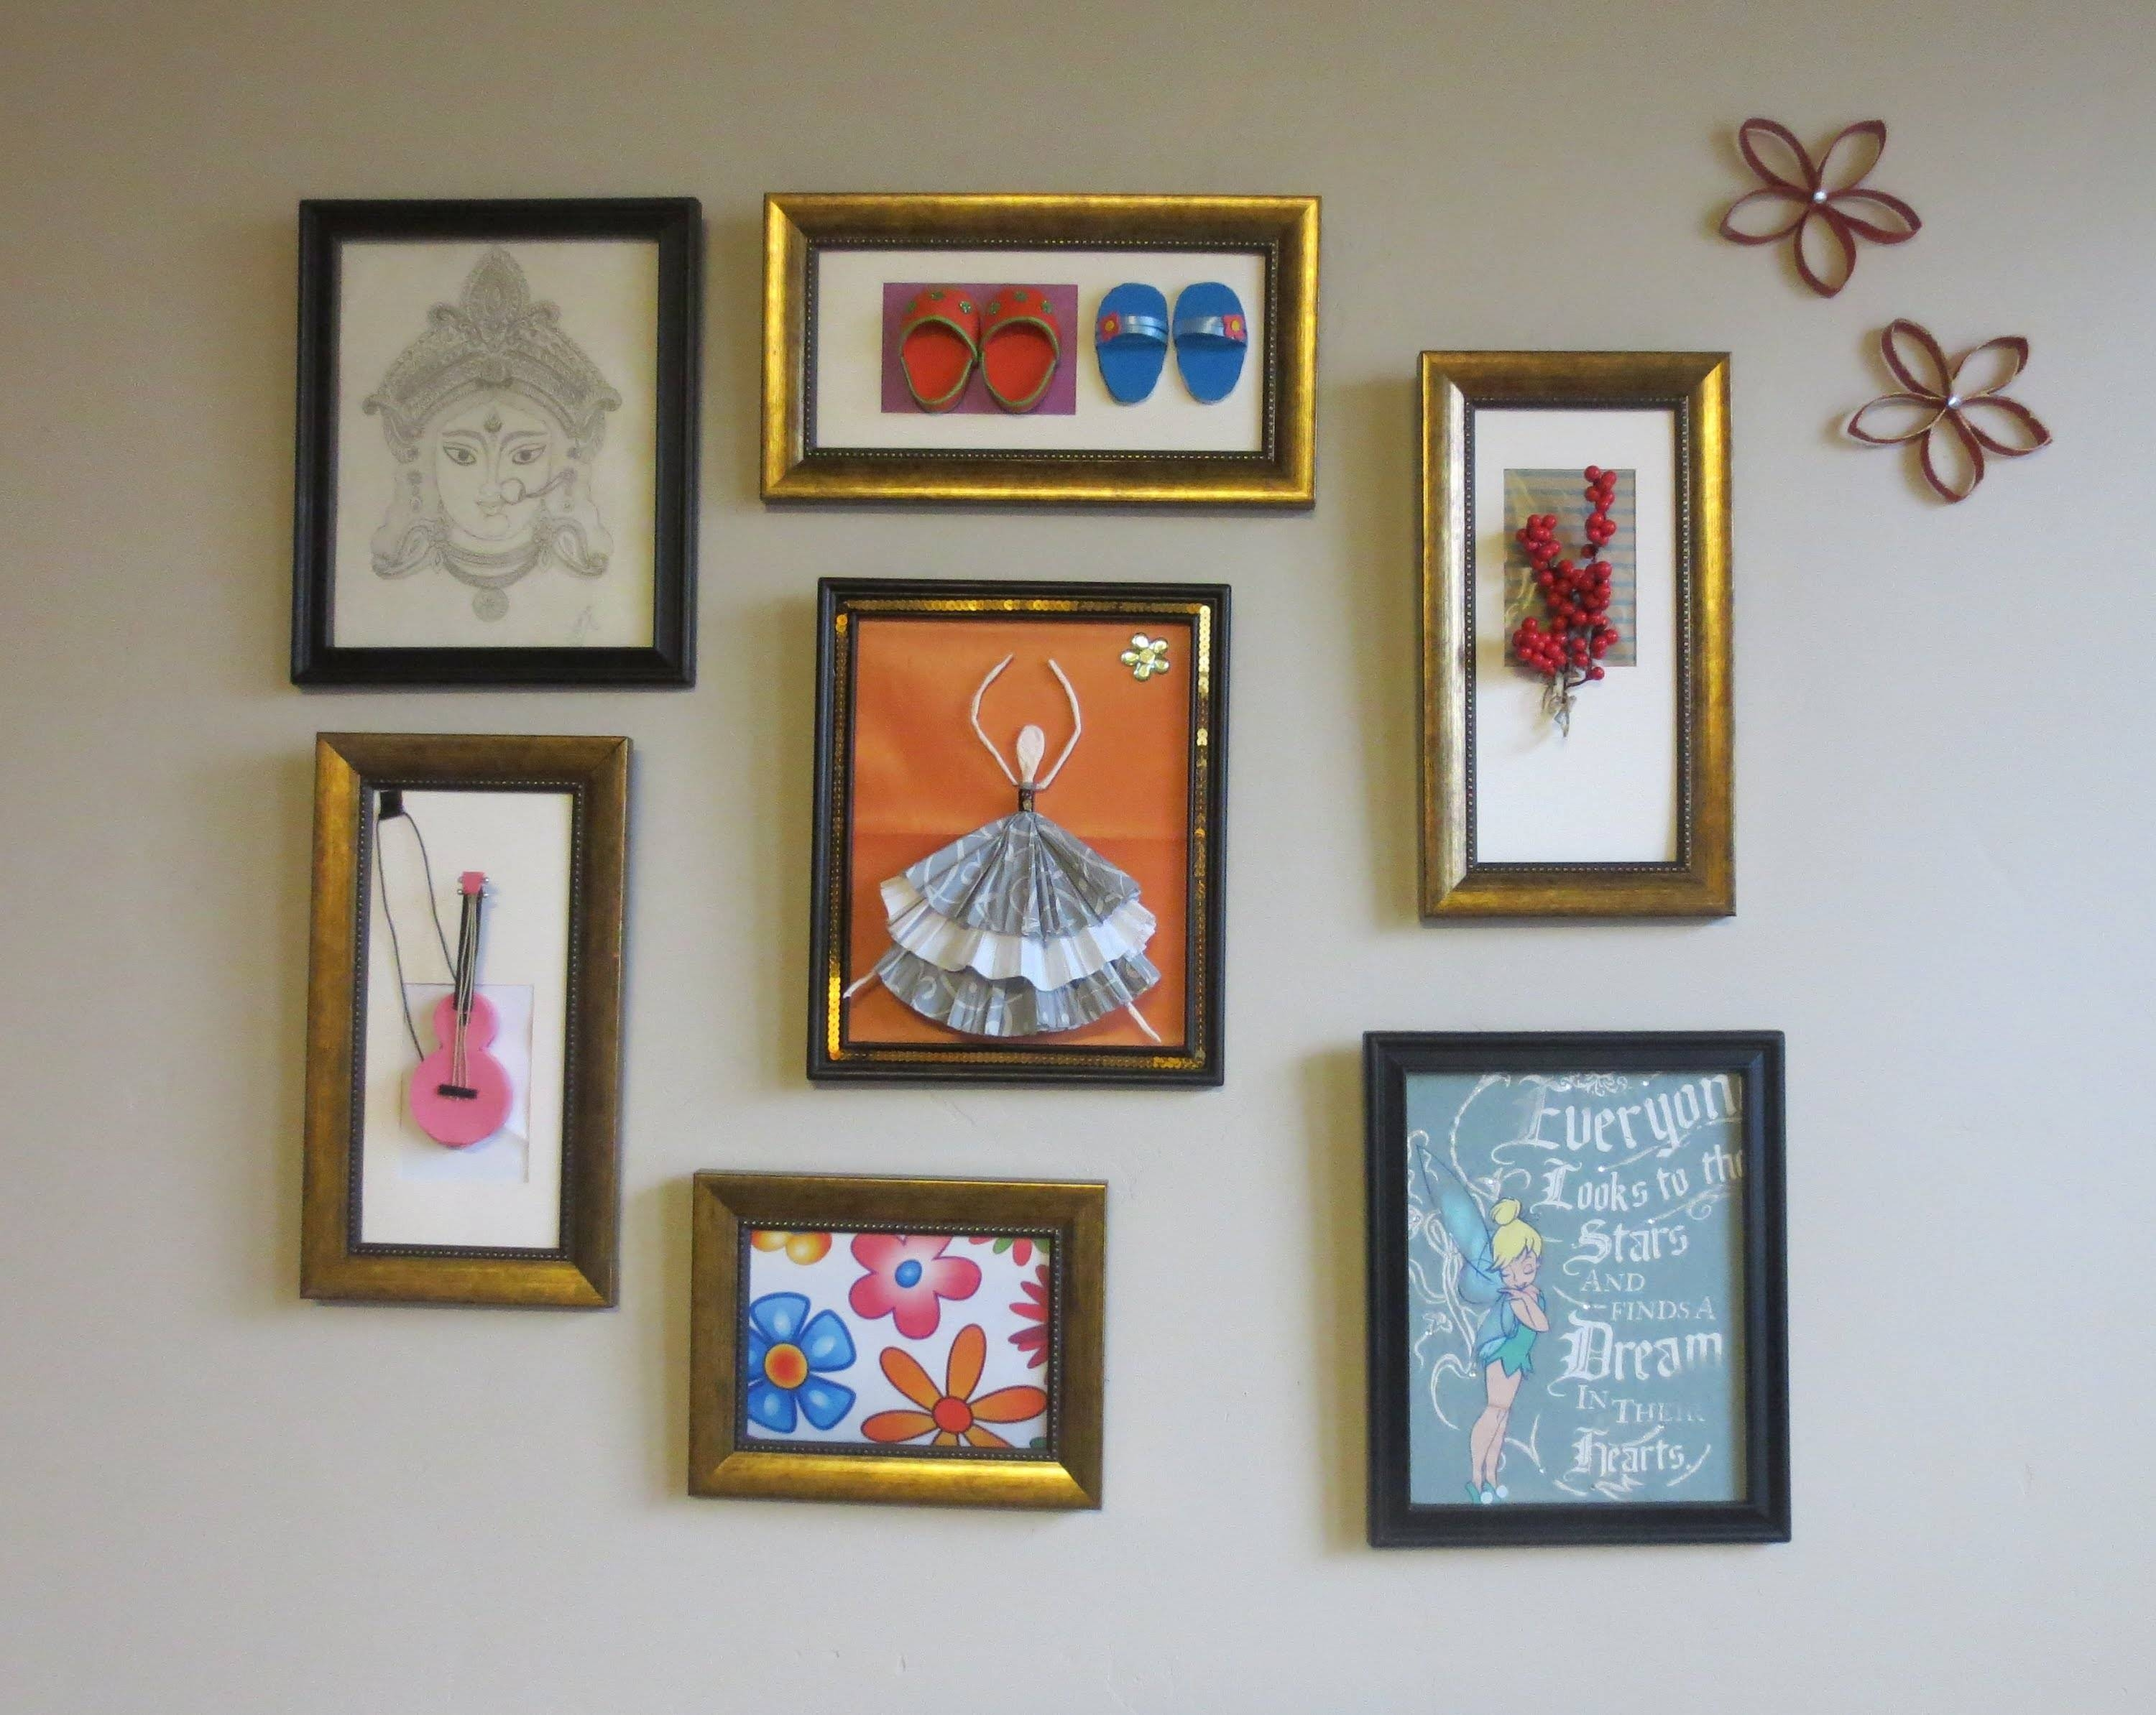 Home Decor : Tshirt Graphic & 3D Wall Art Picture Frame Collage Throughout Latest Wall Art Frames (View 11 of 20)